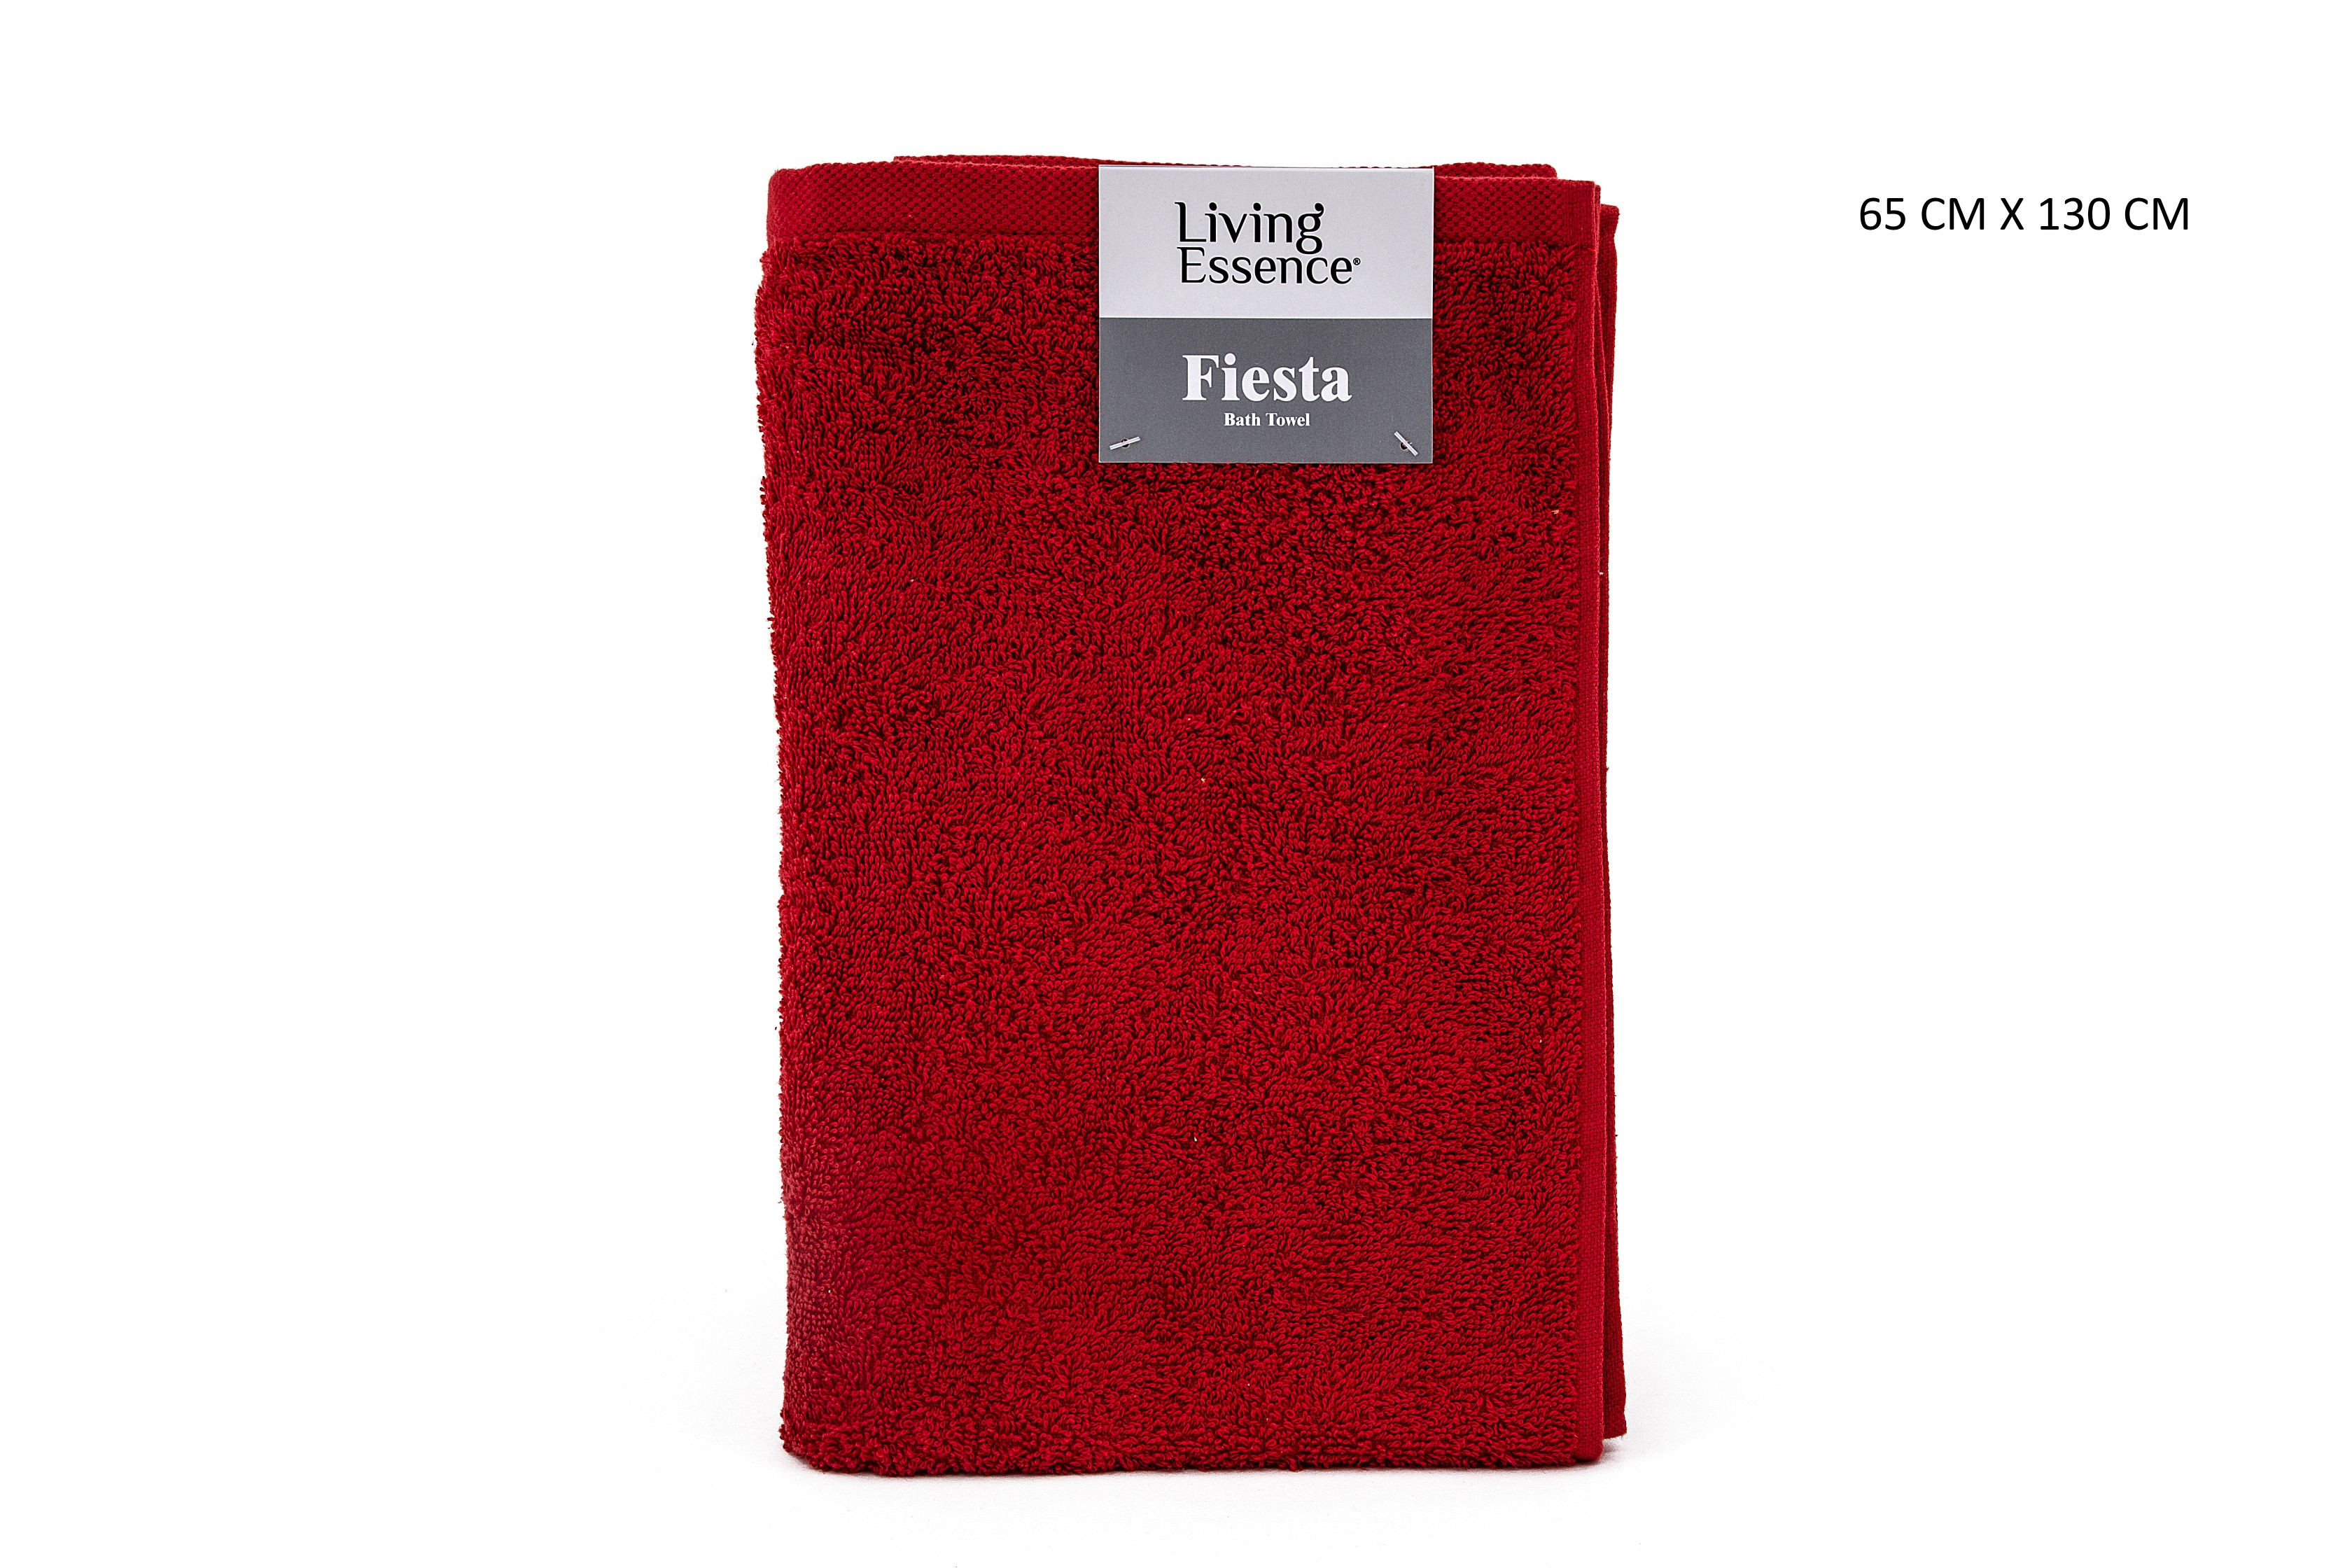 Fiesta Bath Terry Towel Cotton Bath Towels in Red Colour by HomeTown